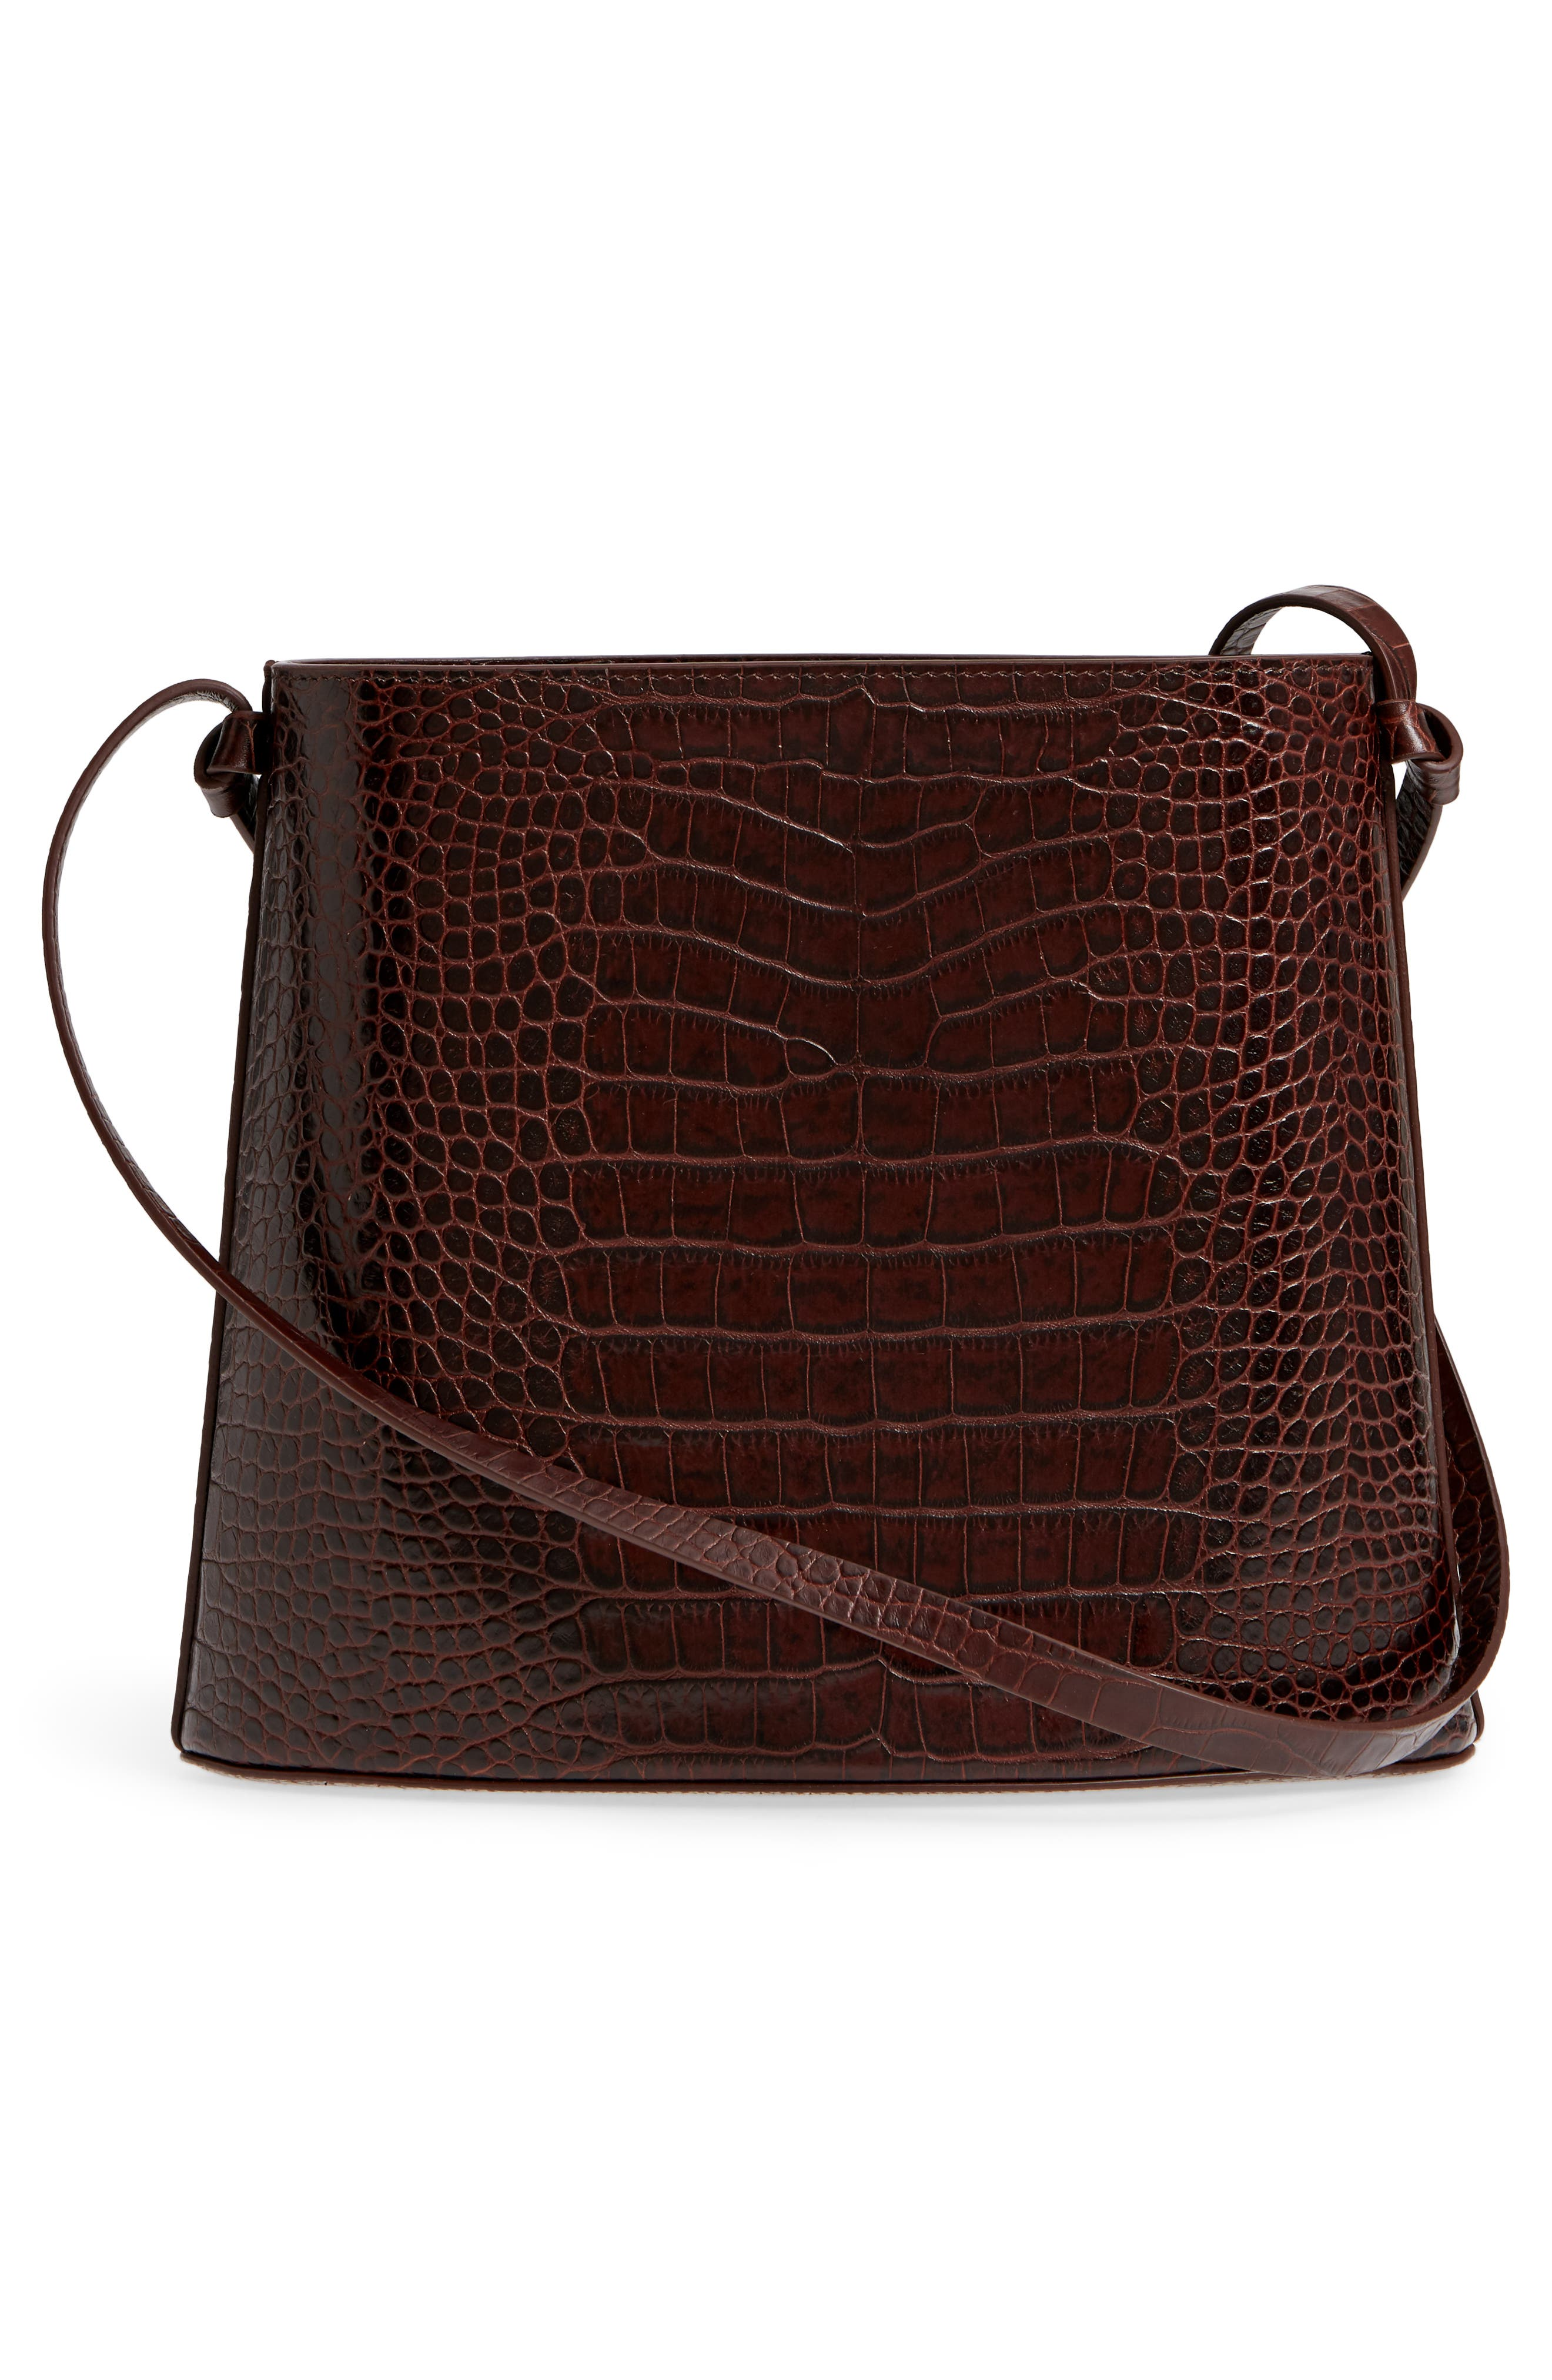 Sybil Croc Embossed Leather Tote,                             Alternate thumbnail 3, color,                             200